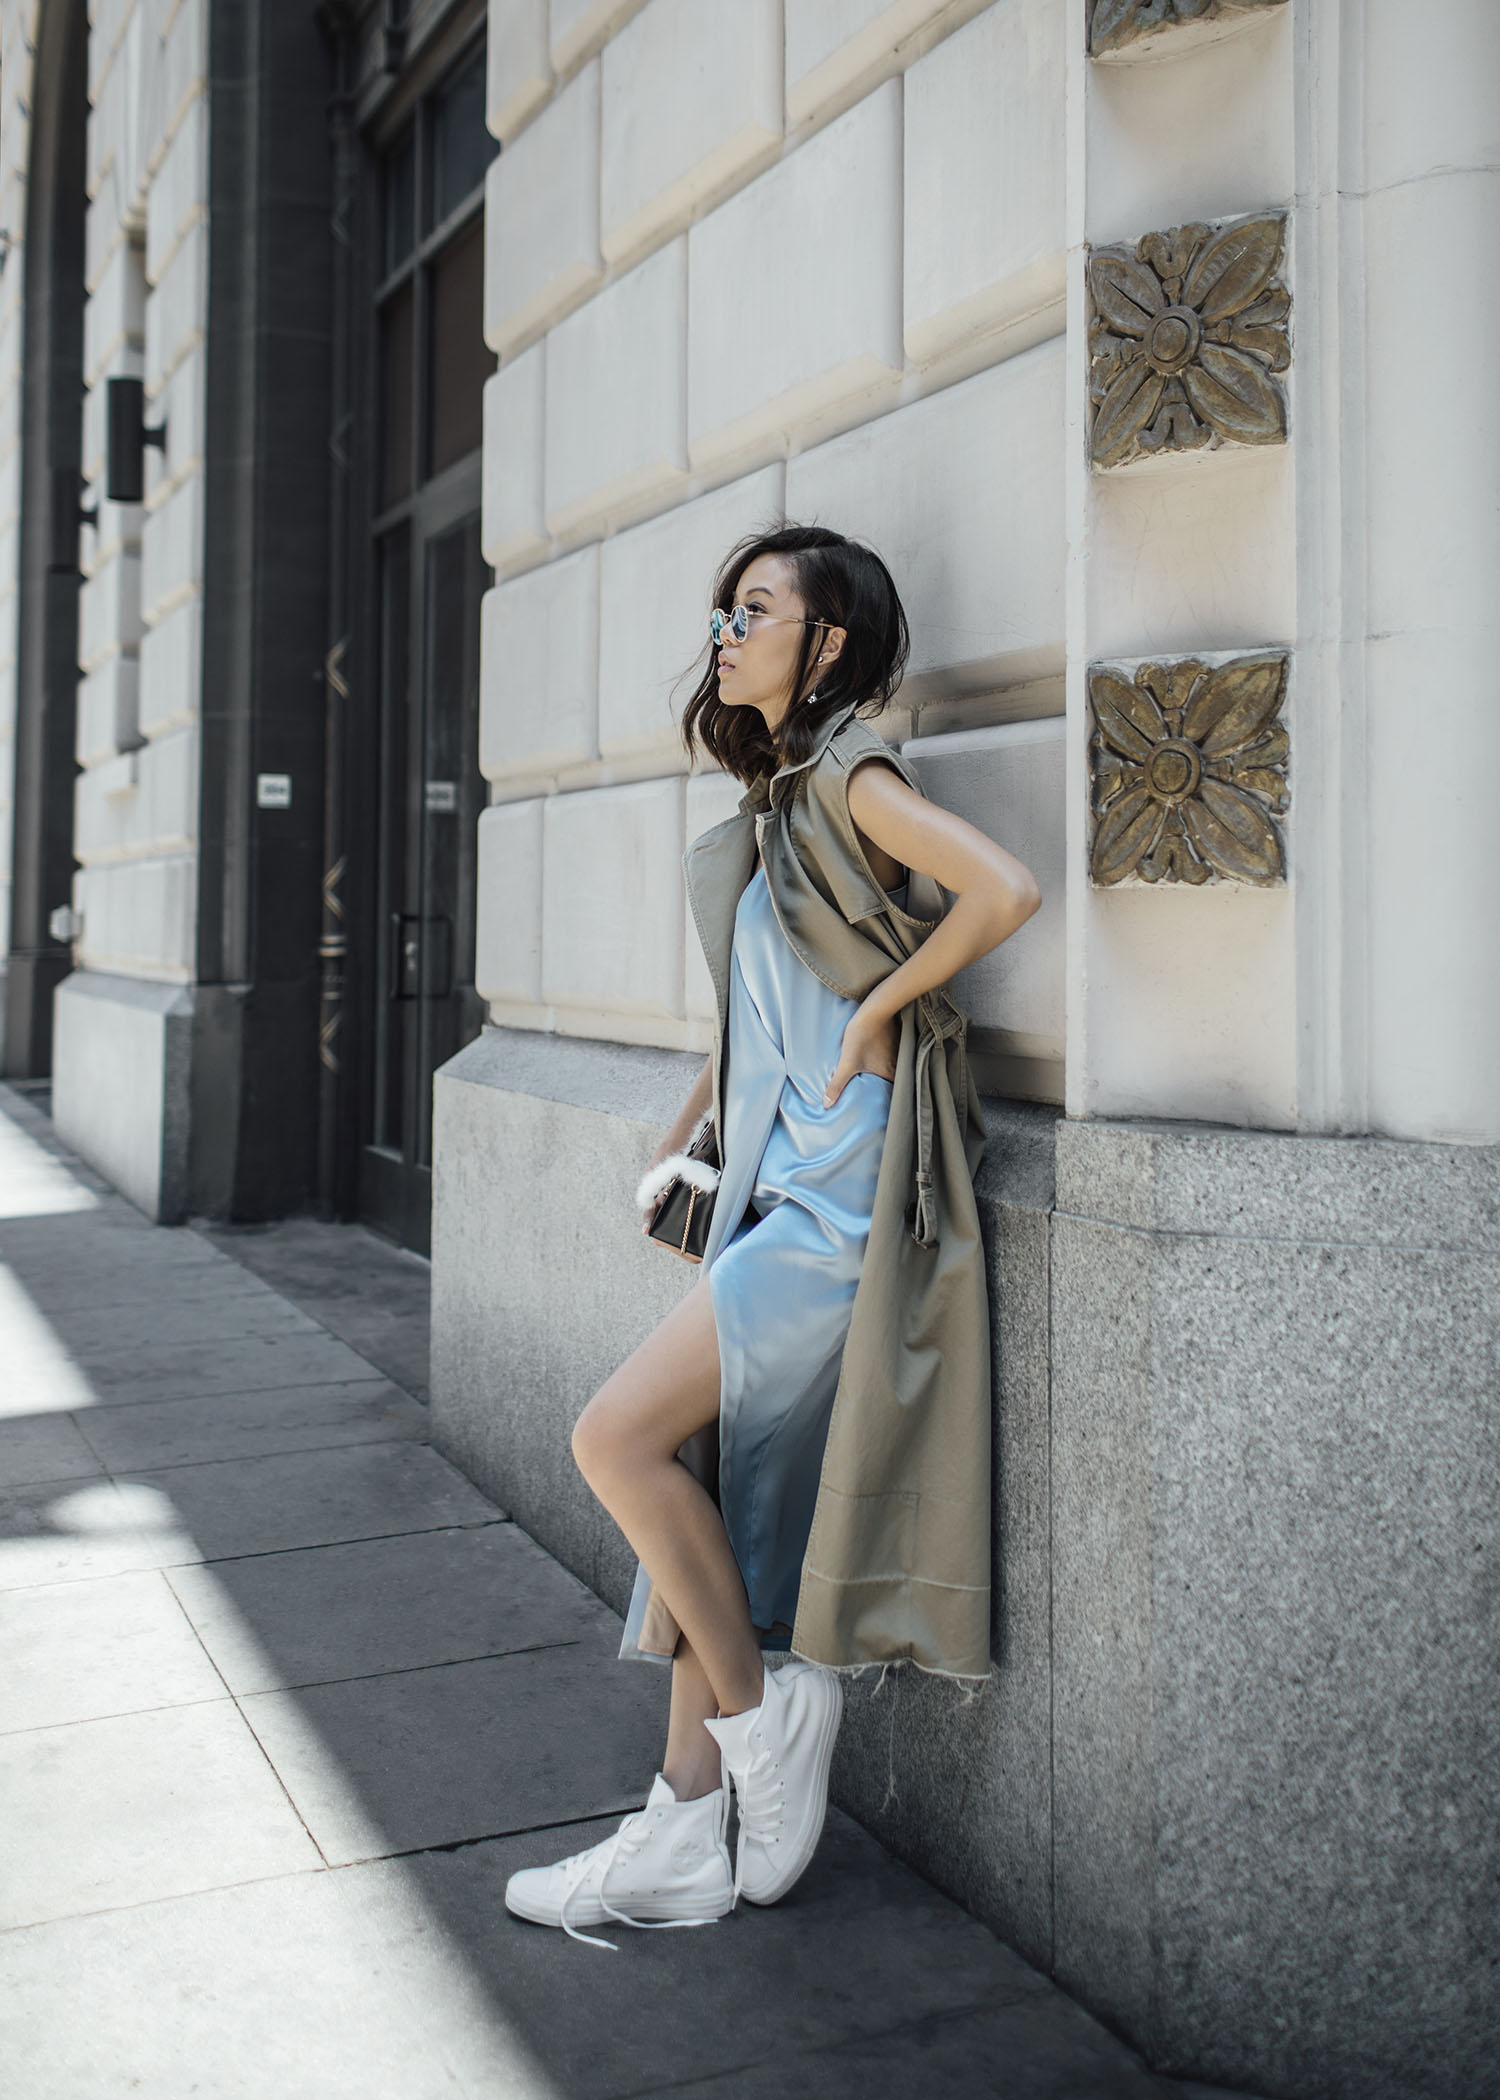 Street style fashion blogger influencer Jenny Tsang of Tsangtastic wearing SALTT Amber Slip Dress from Frilly, LAUTEM I Got Rhythm Bag, GARRETT LEIGHT Sunglasses, CONVERSE Chuck Taylor High Top Sneaker, in Los Angeles, California.